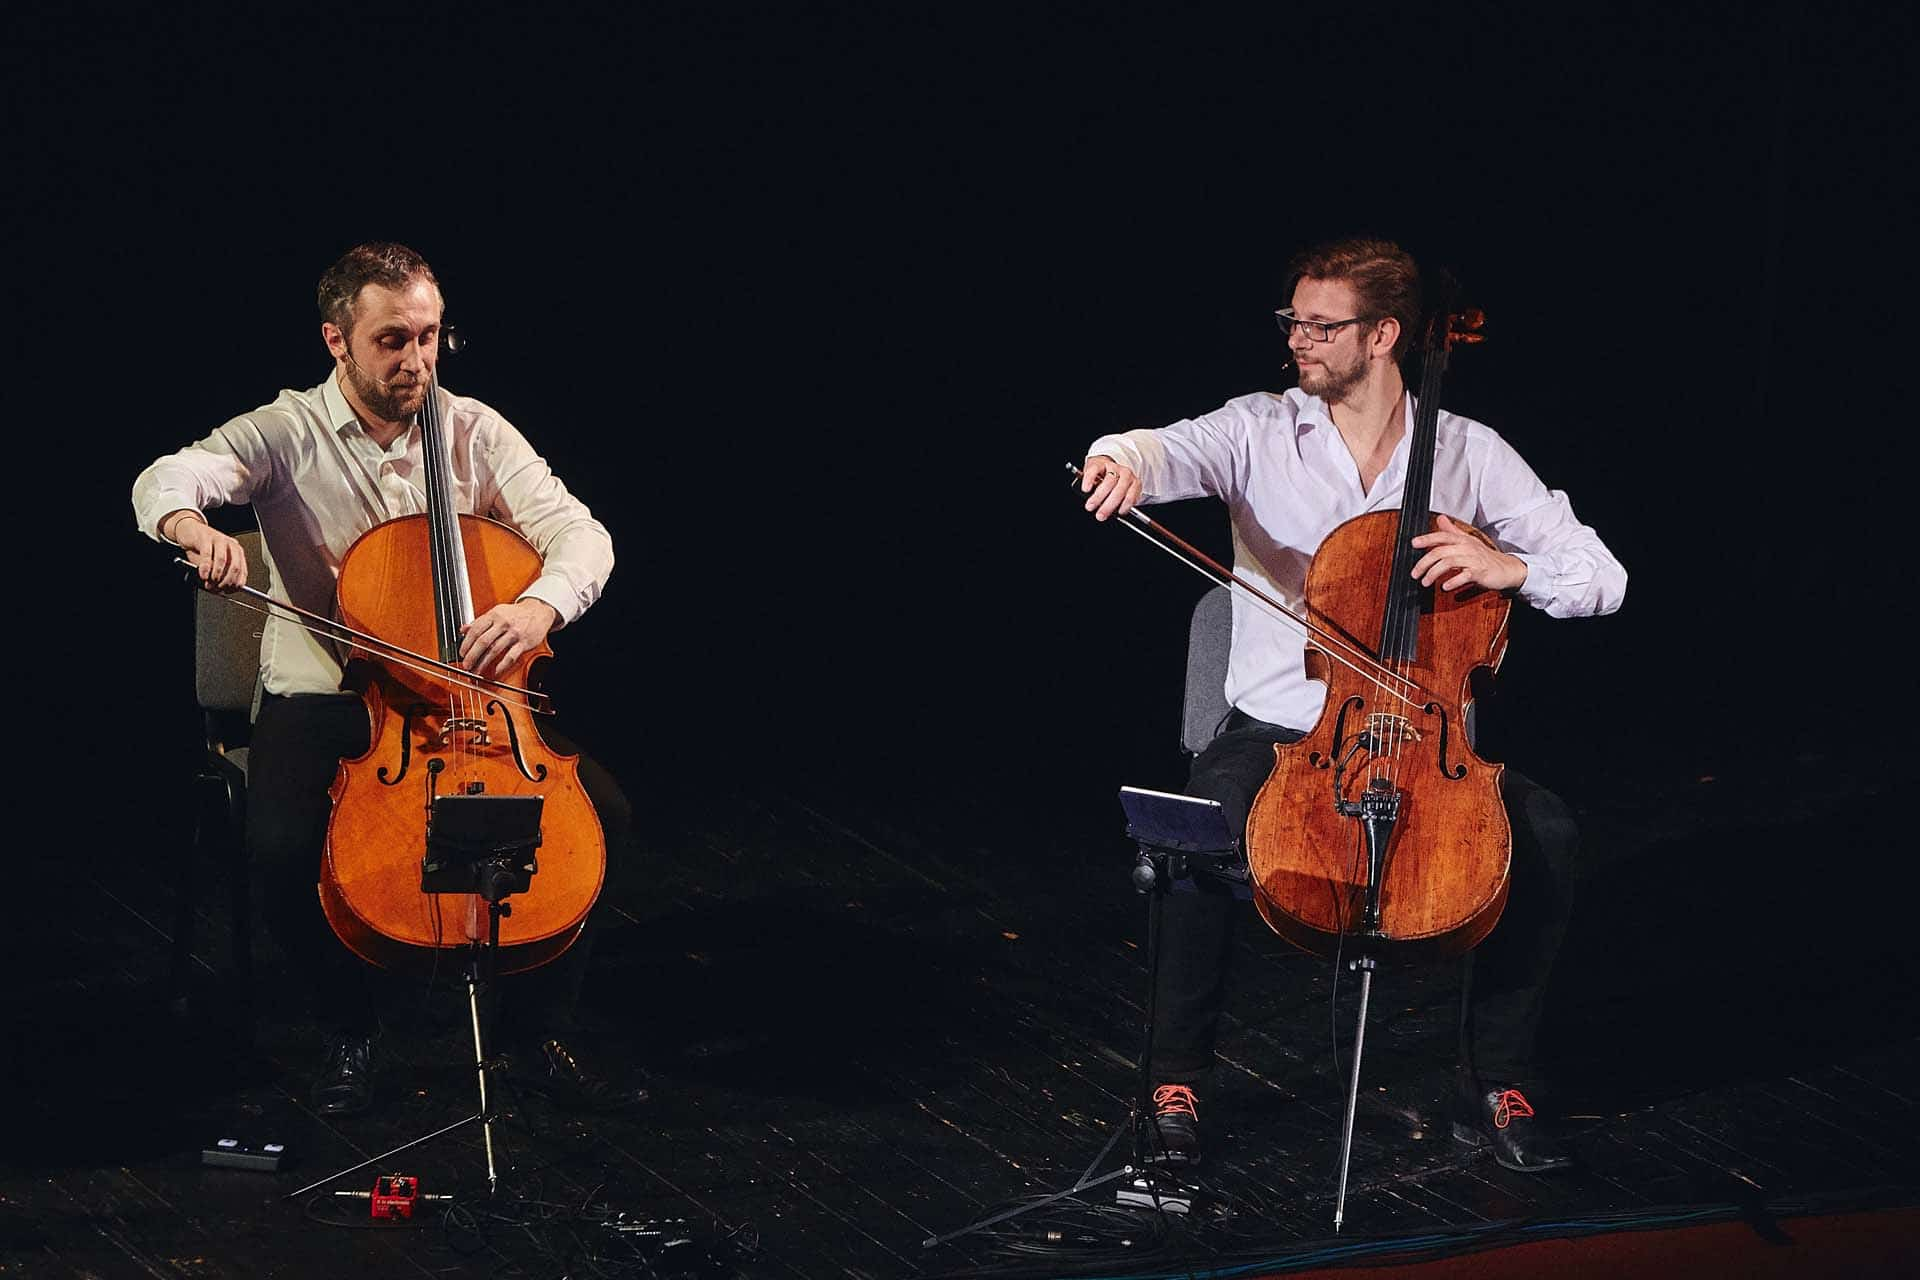 Prague Cello Quartet - Jičín 2019